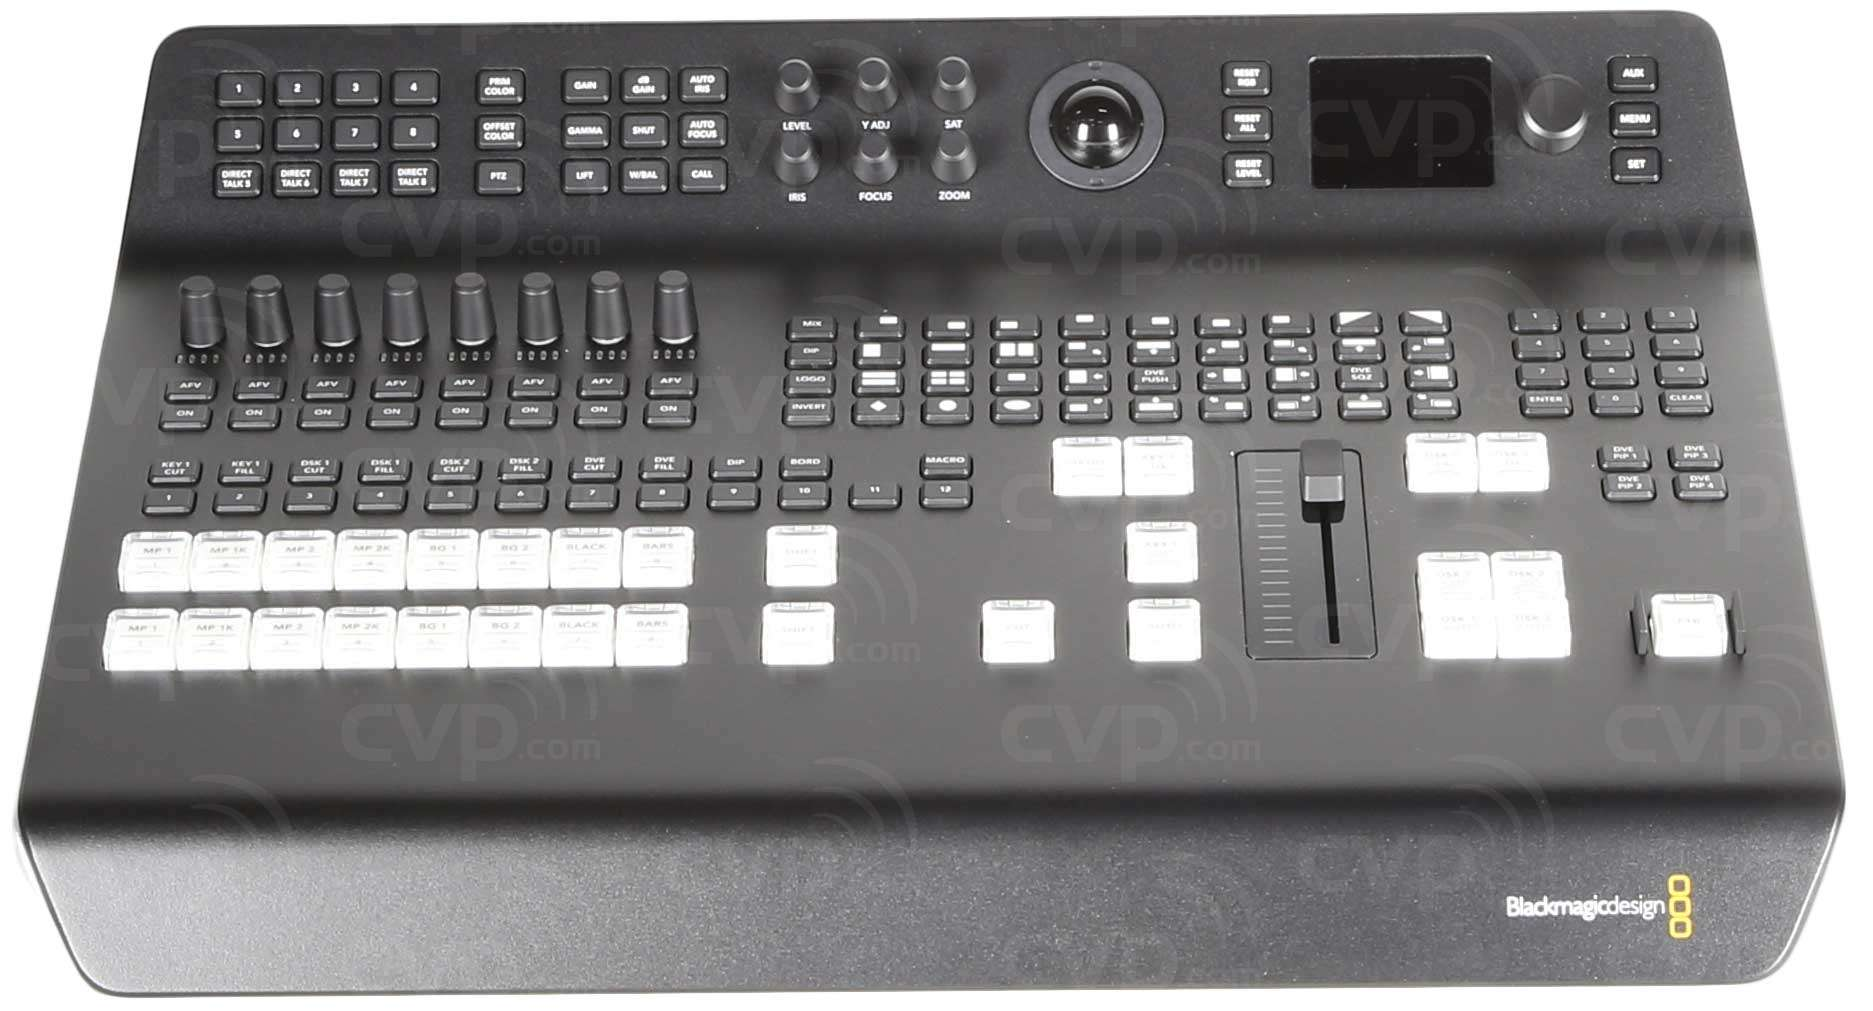 Buy Open Box Blackmagic Design Bmd Swatemtvstu Prohd Atem Television Studio Pro Hd Live Production Switcher